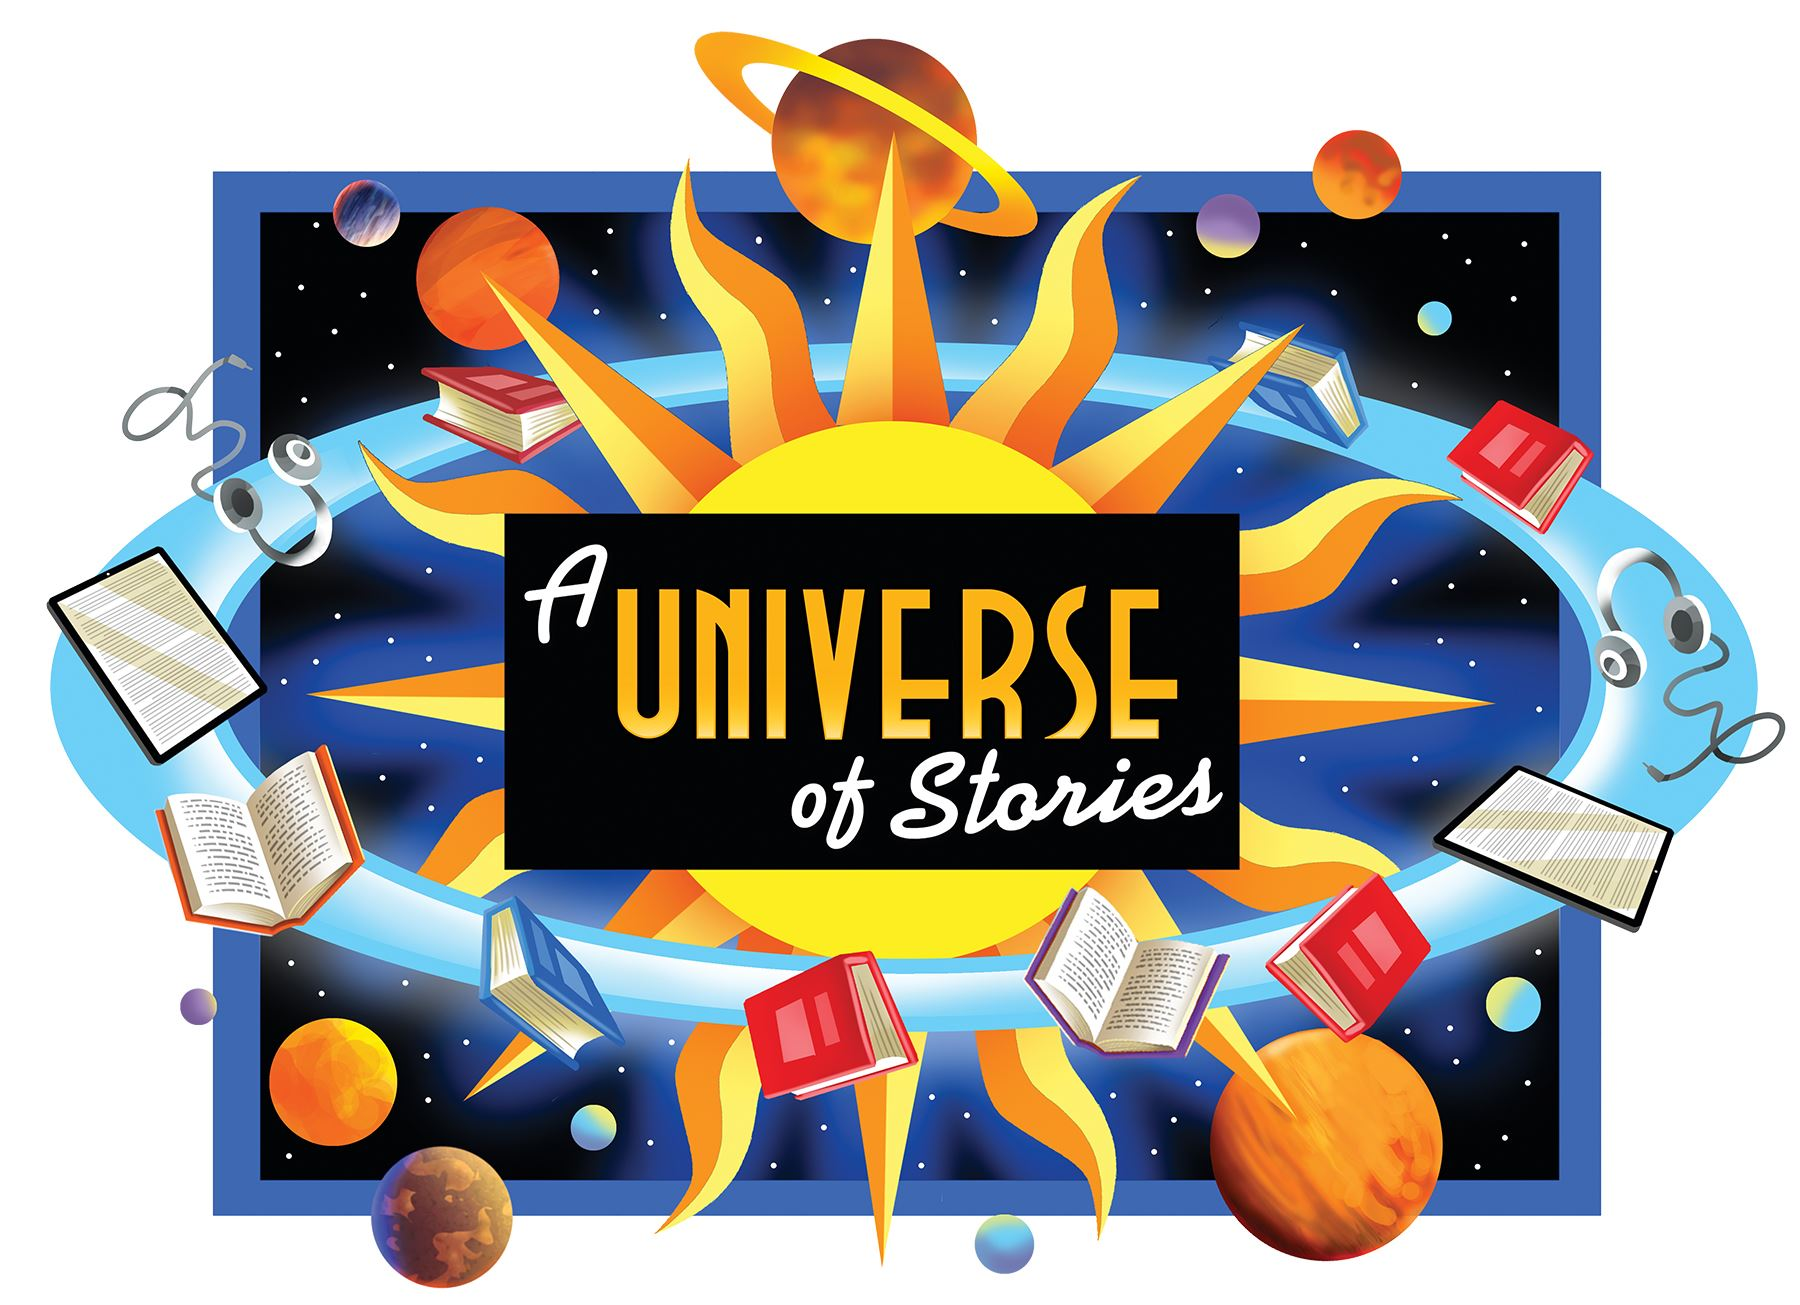 A Universe of Stories loge over the sun with books, eReader tablets, and headphones floating around